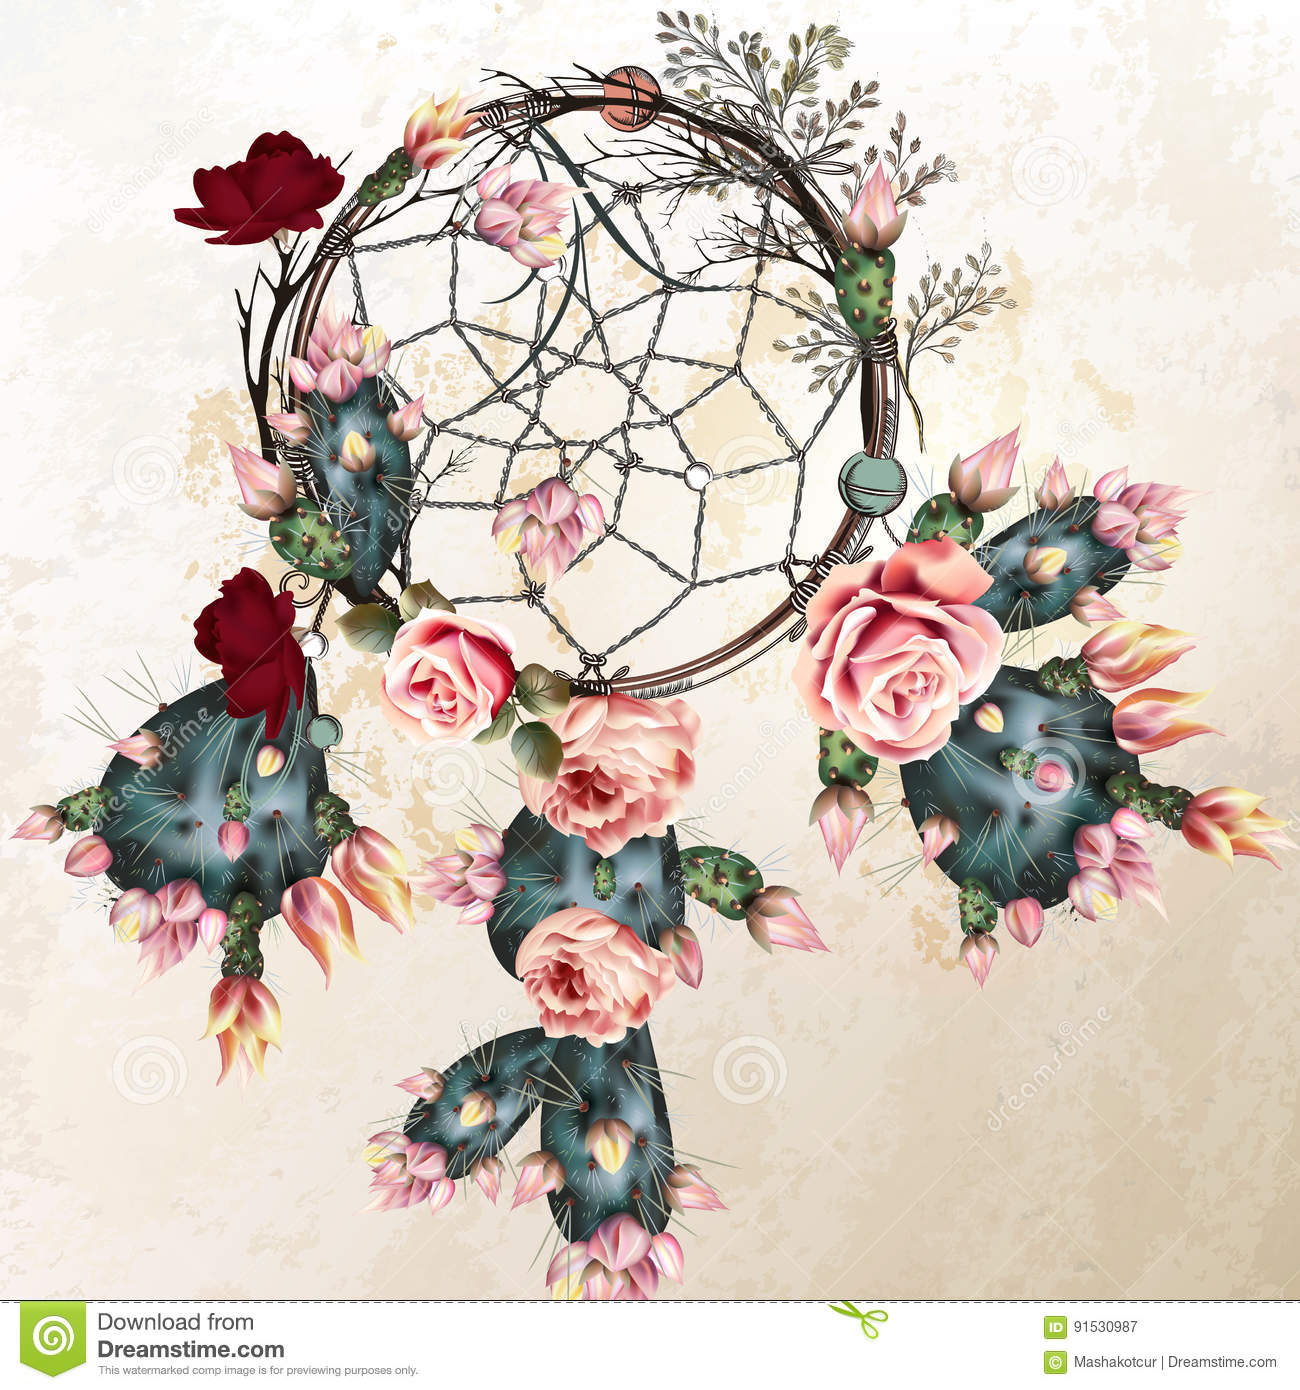 Grunge Vector Boho Background With Indian Dreamcatcher And Rose